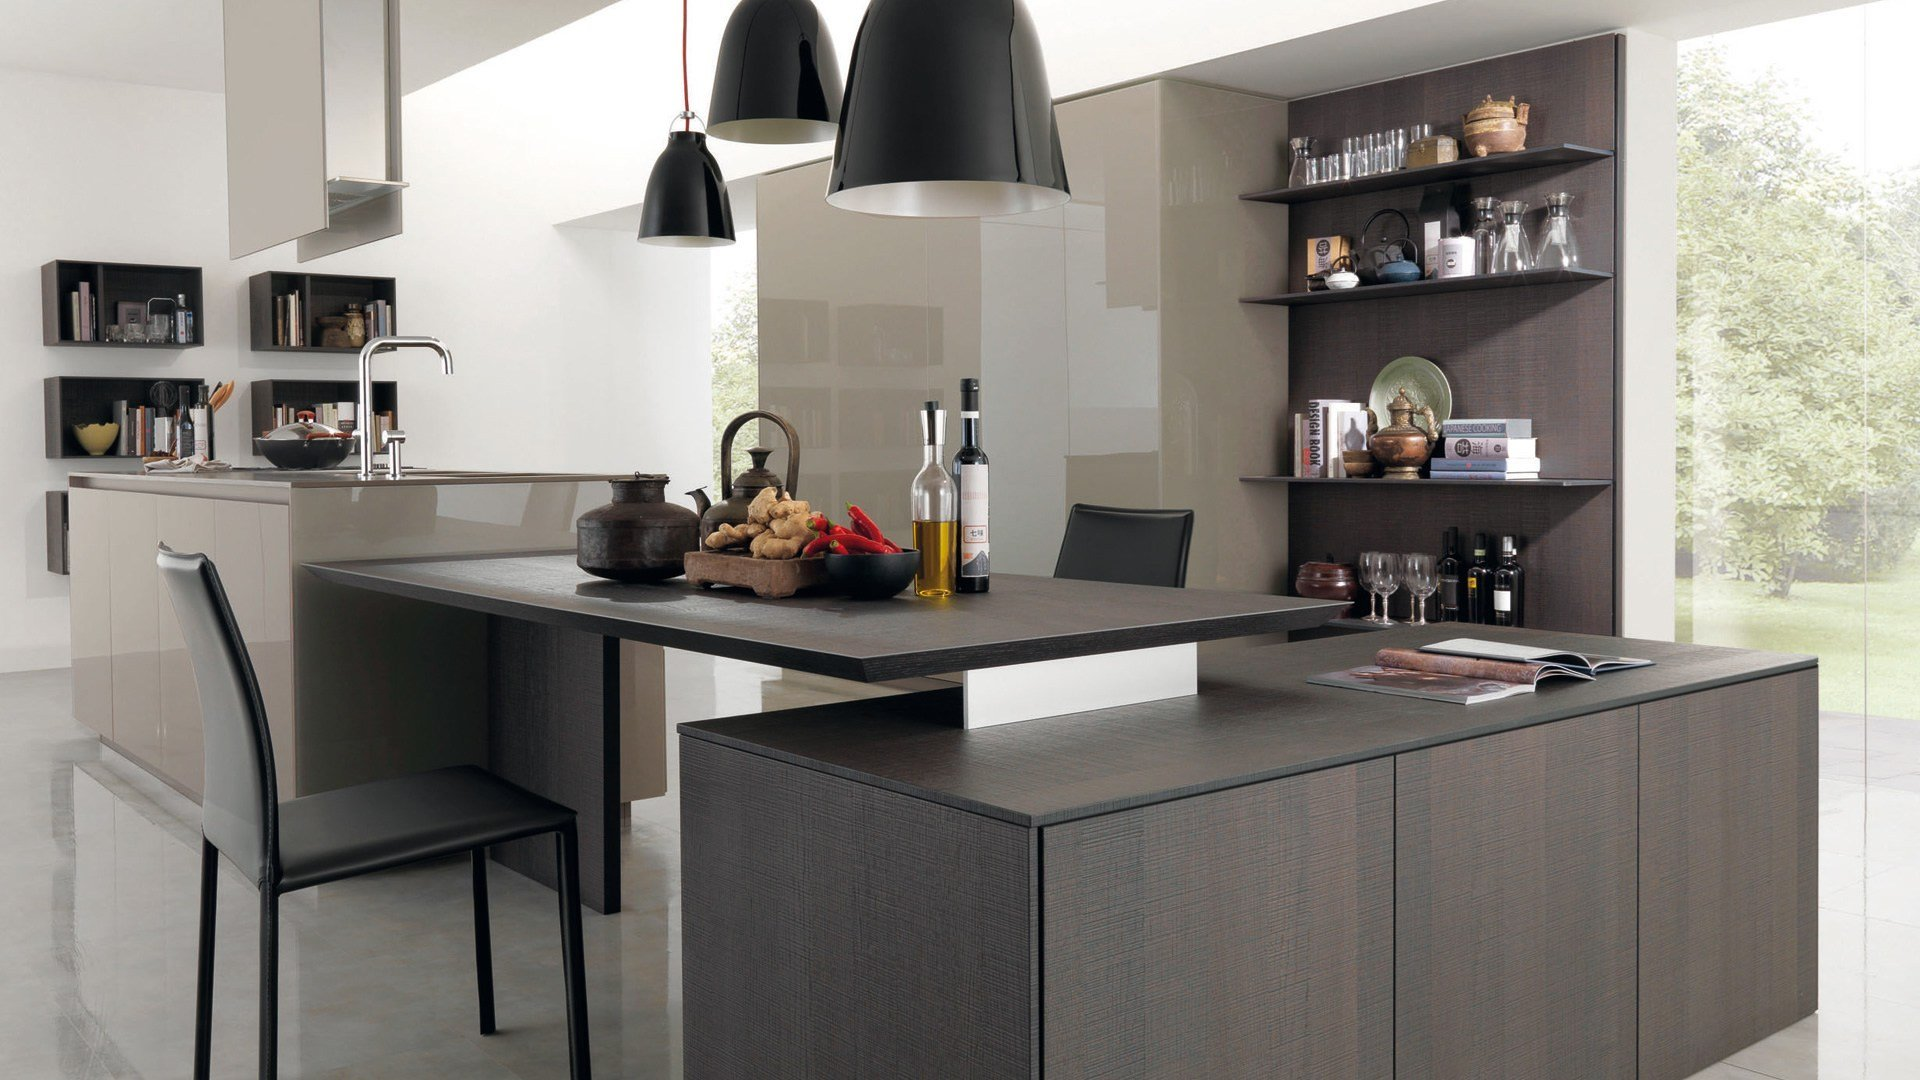 Wooden fitted kitchen kubic 4 by euromobil design roberto for Wooden fitted kitchen